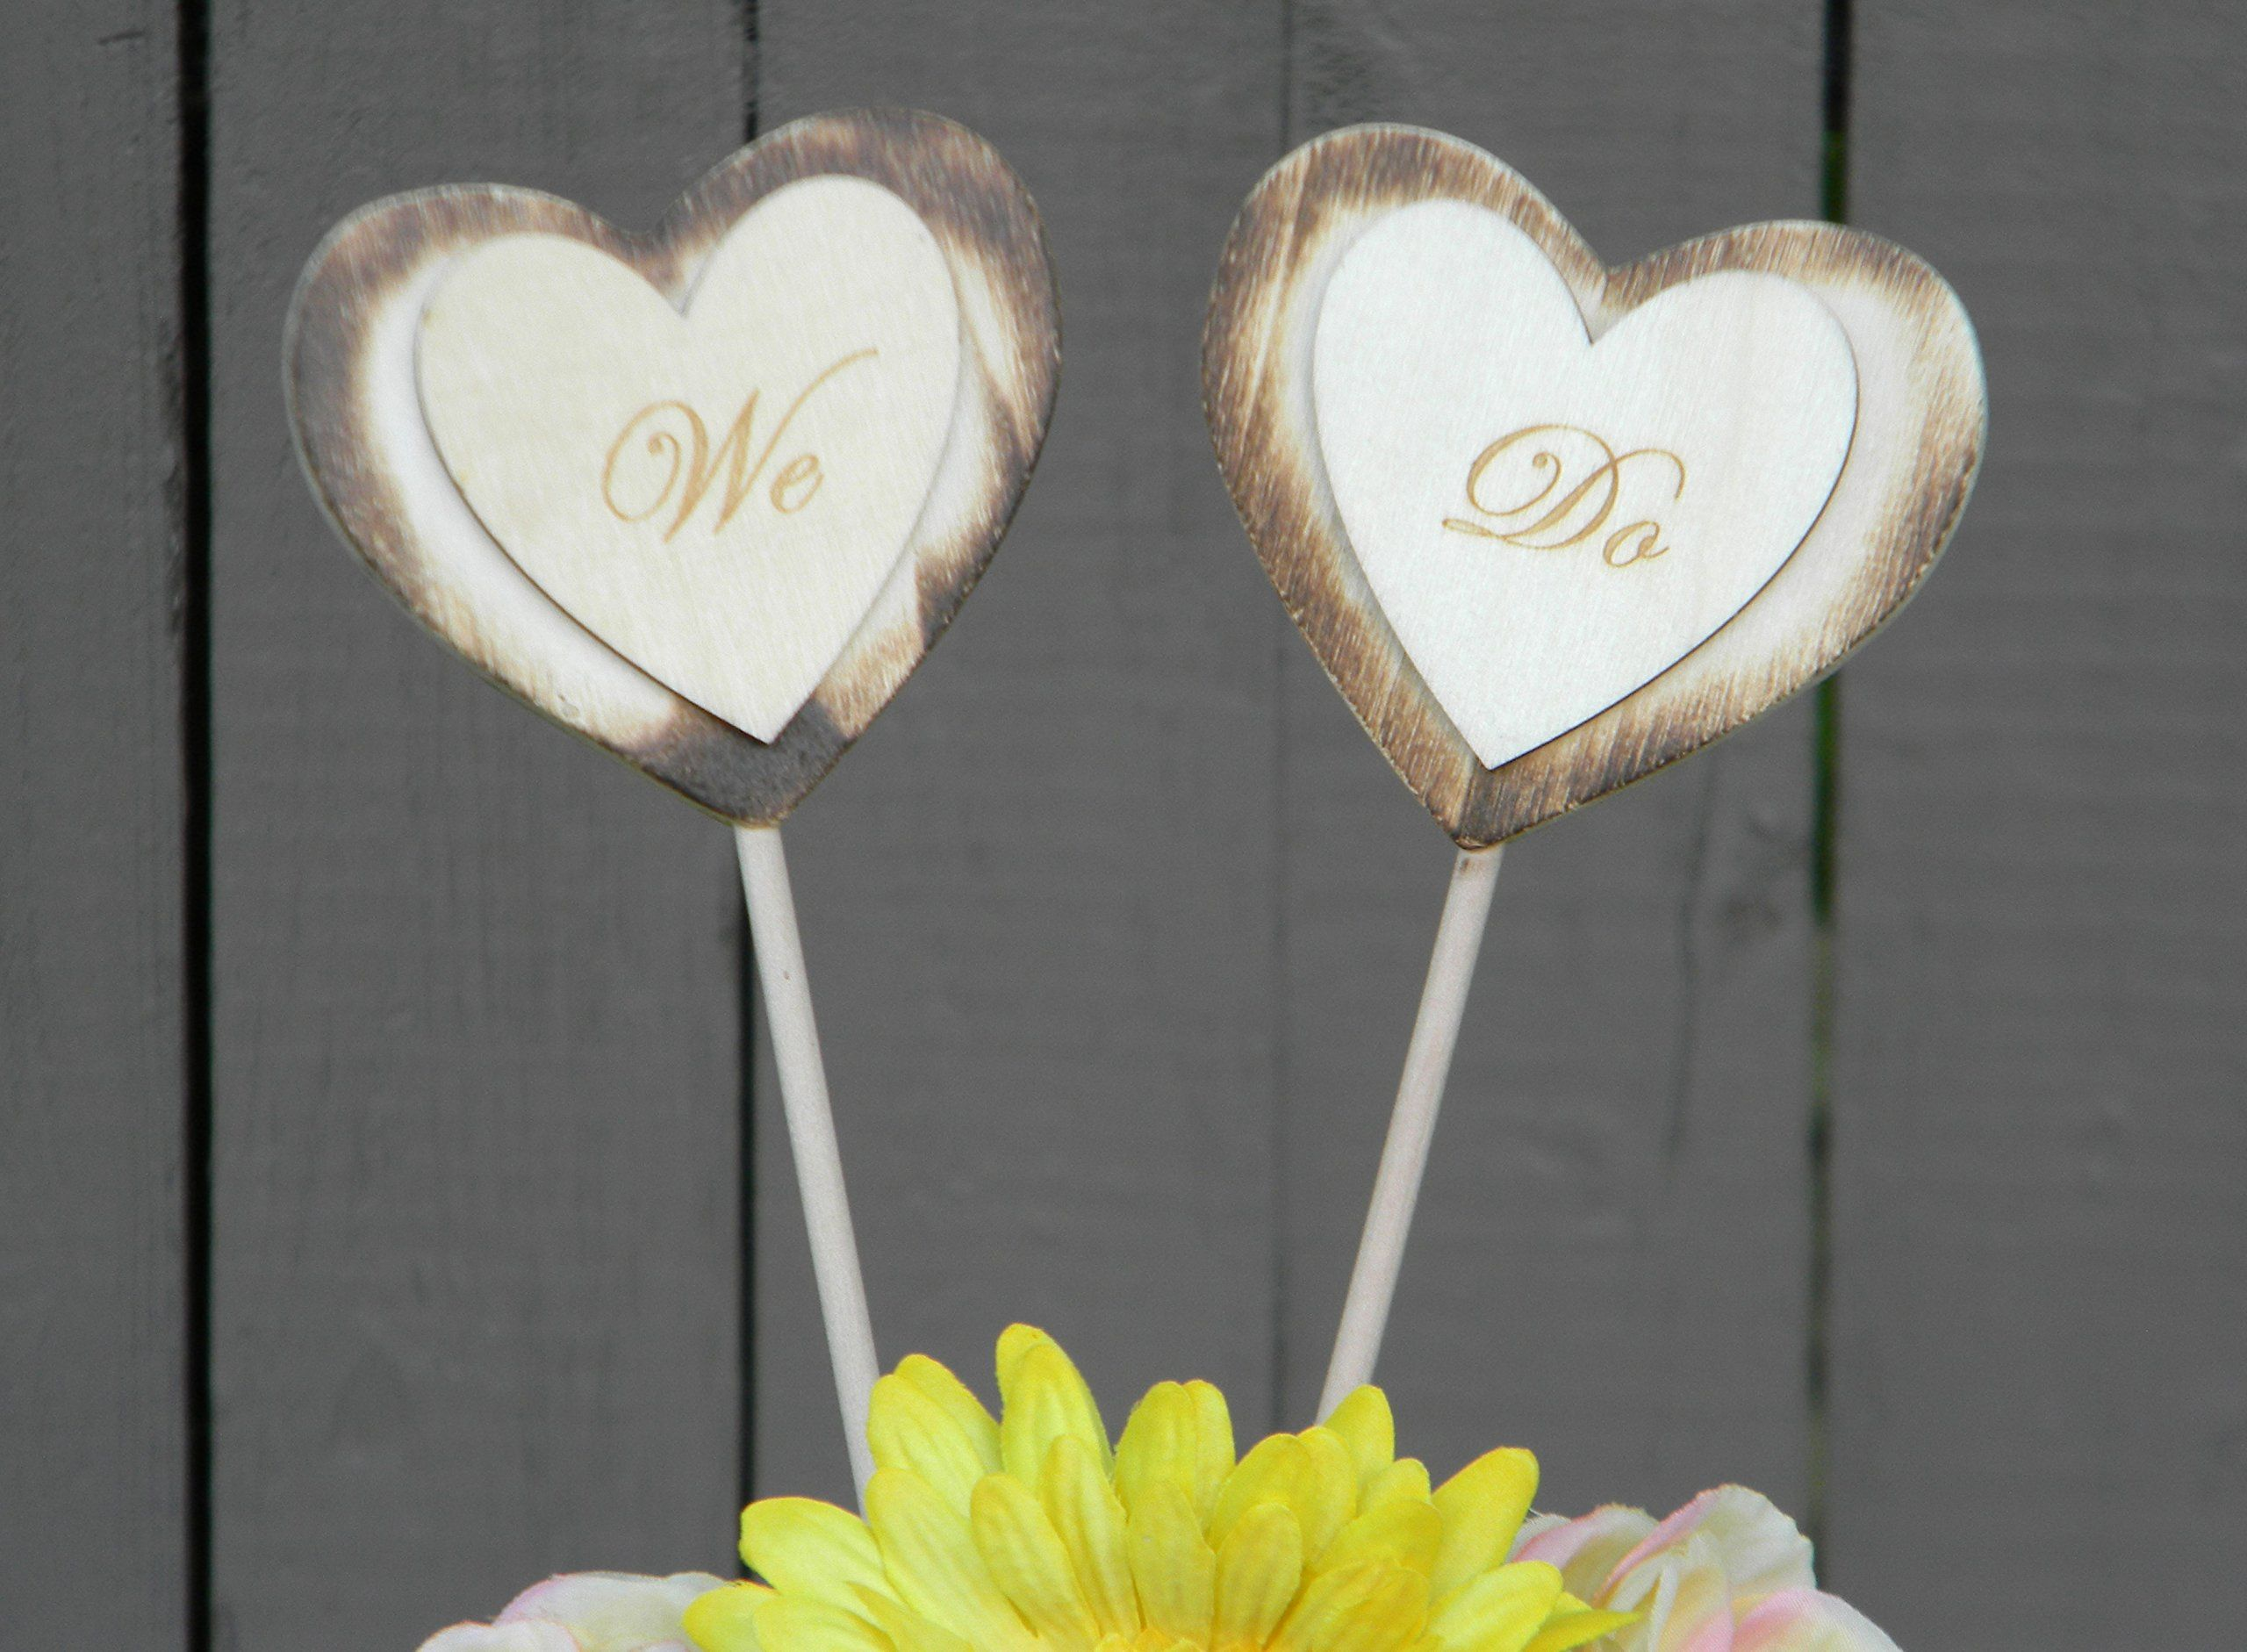 Rustic cake toppers heart wedding cake toppers we do cake toppers